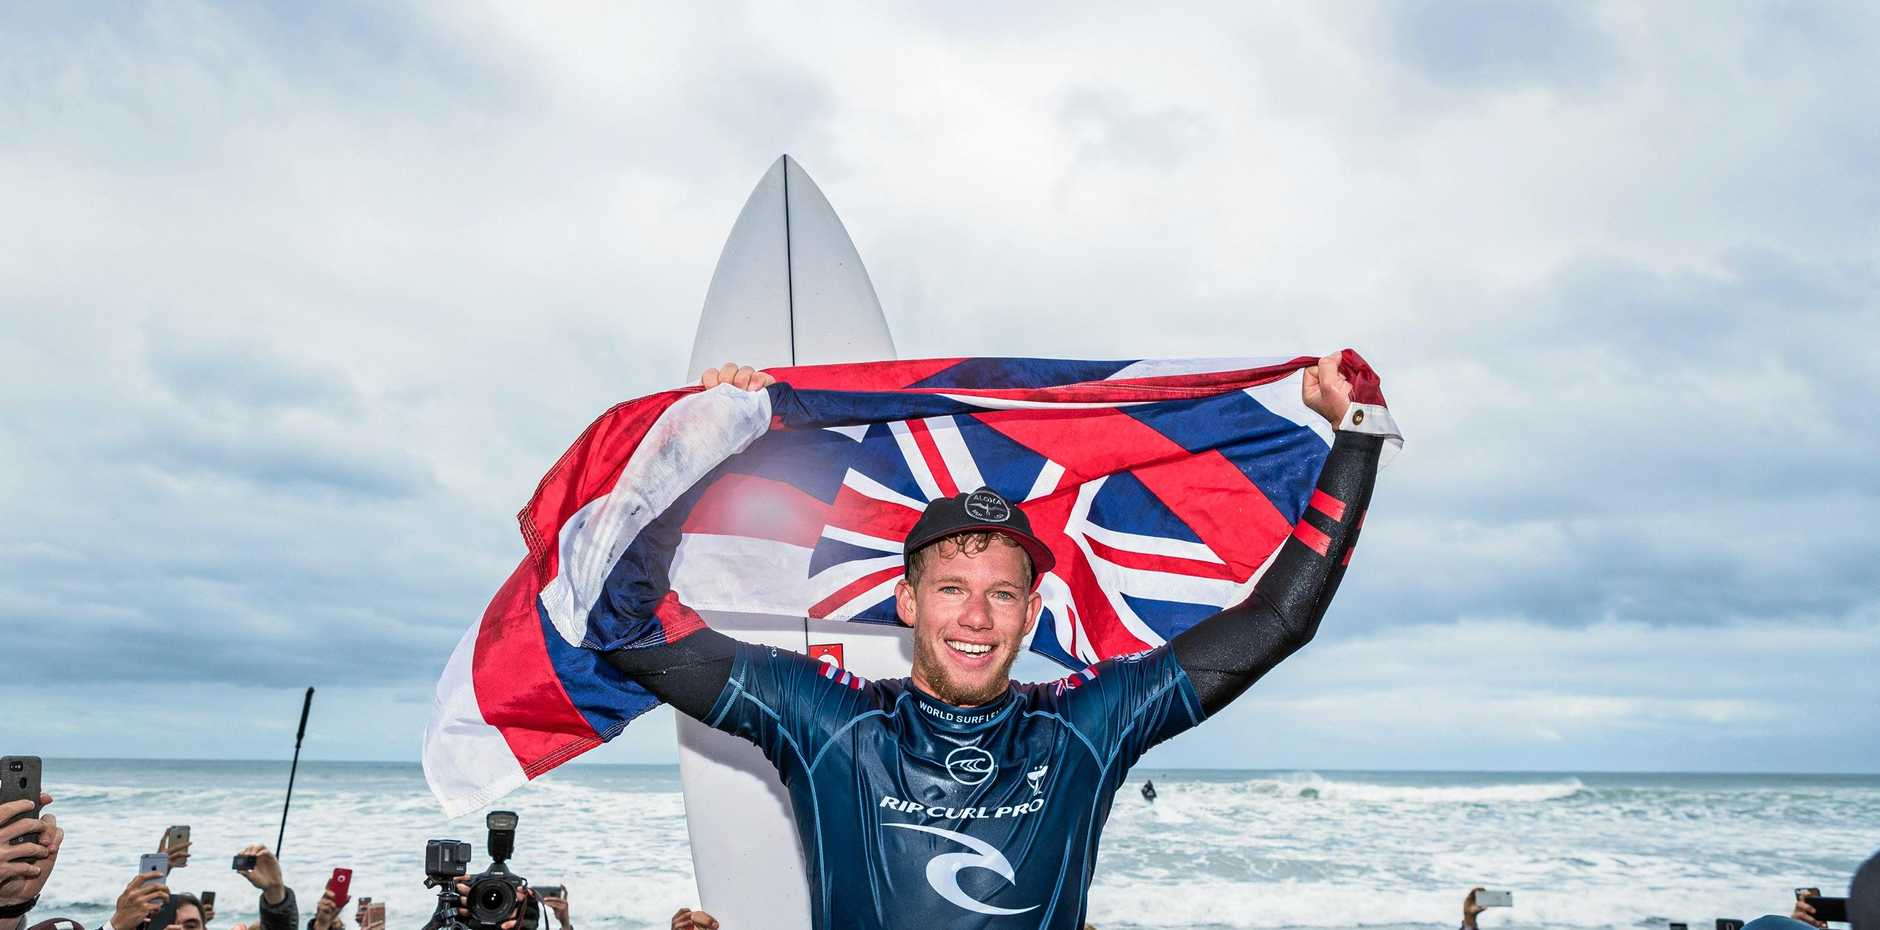 John John Florence reacts after winning the 2019 Rip Curl Pro at Bells Beach, Victoria.